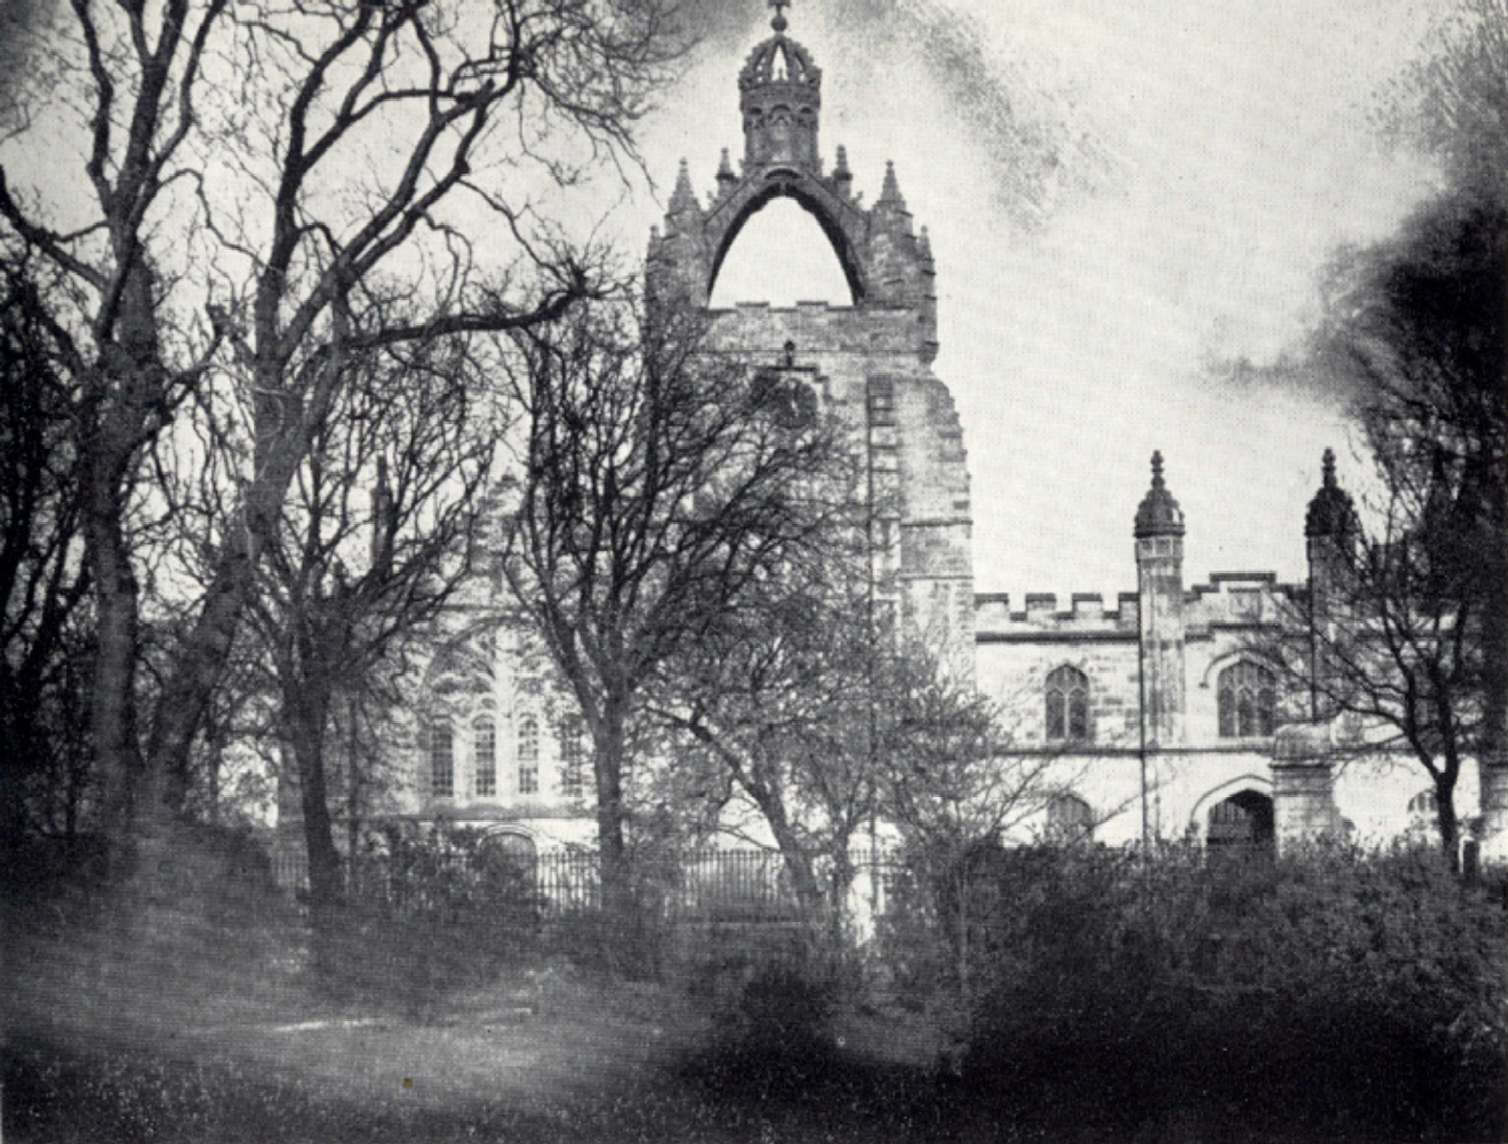 King's College Aberdeen, 1850s, JFW